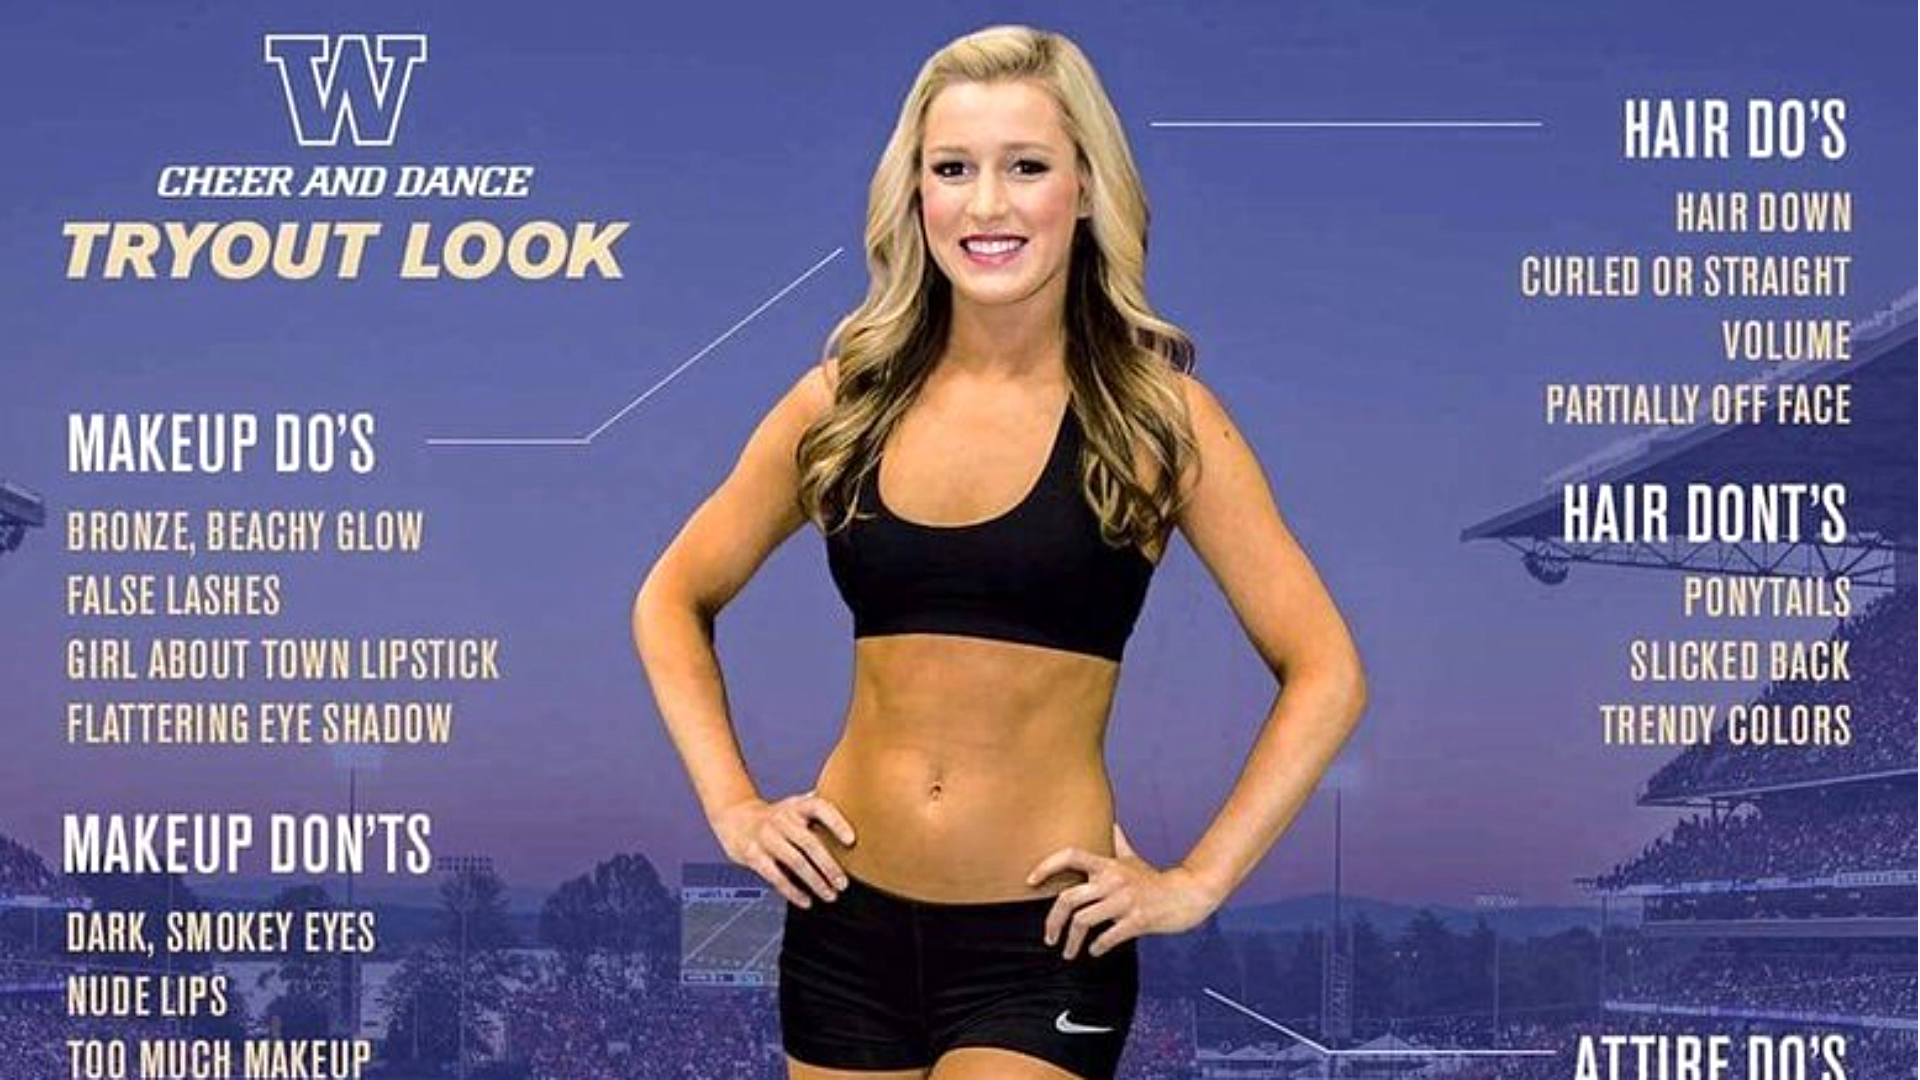 What type of bra should a Jr High and High School cheerleader be wearing?